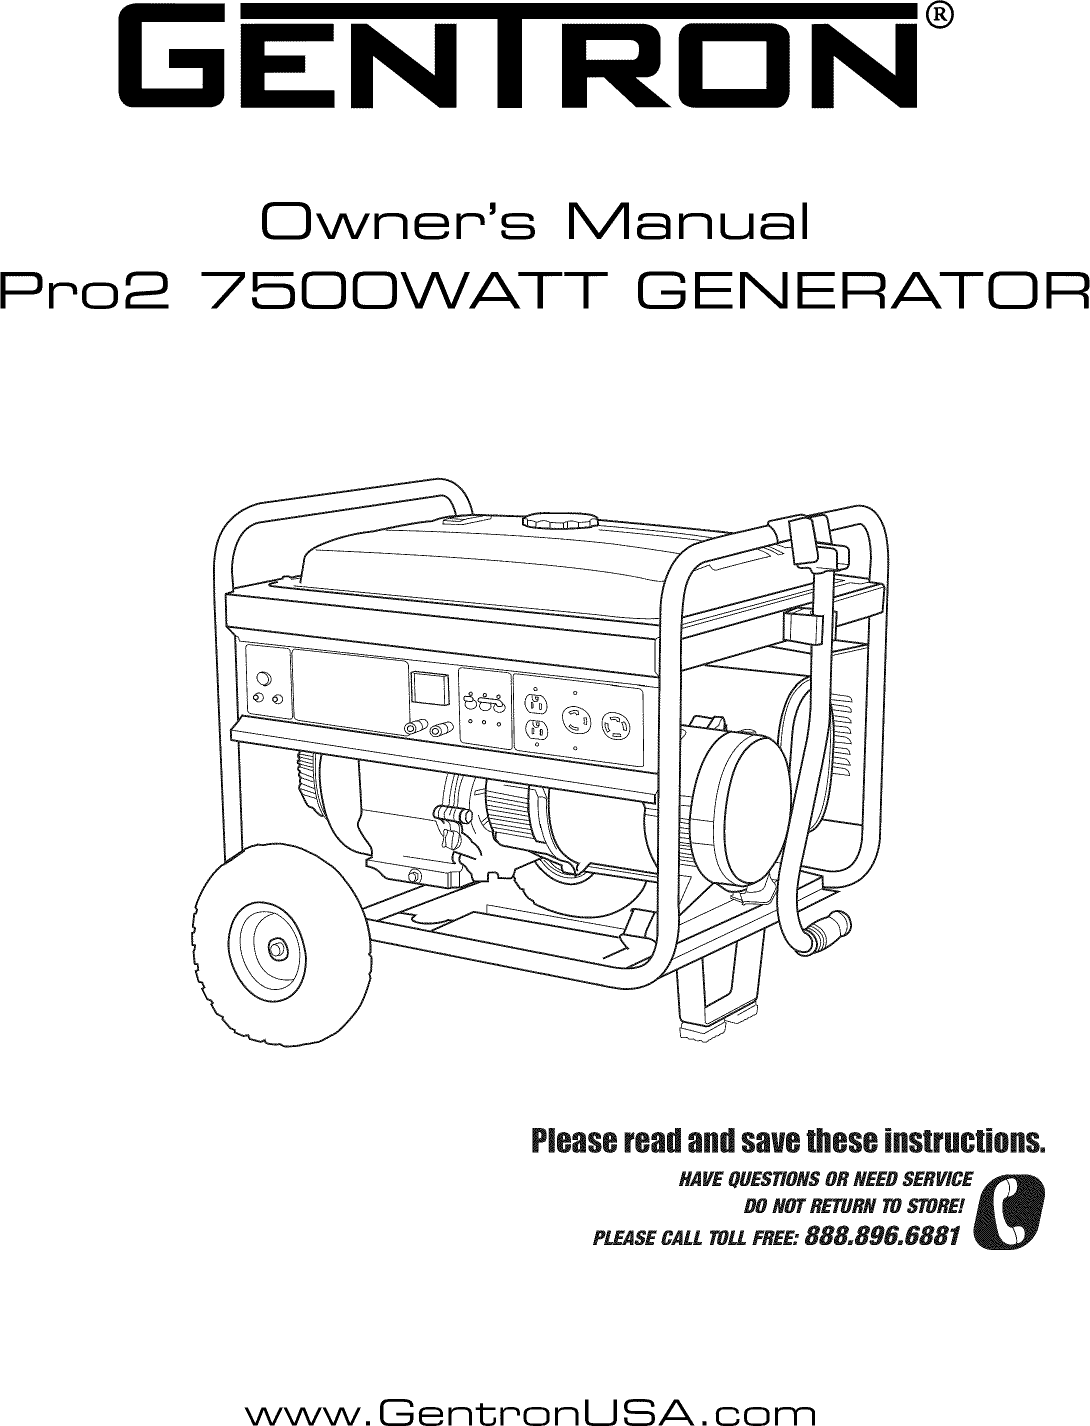 Gentron GG7500 User Manual GENERATOR Manuals And Guides